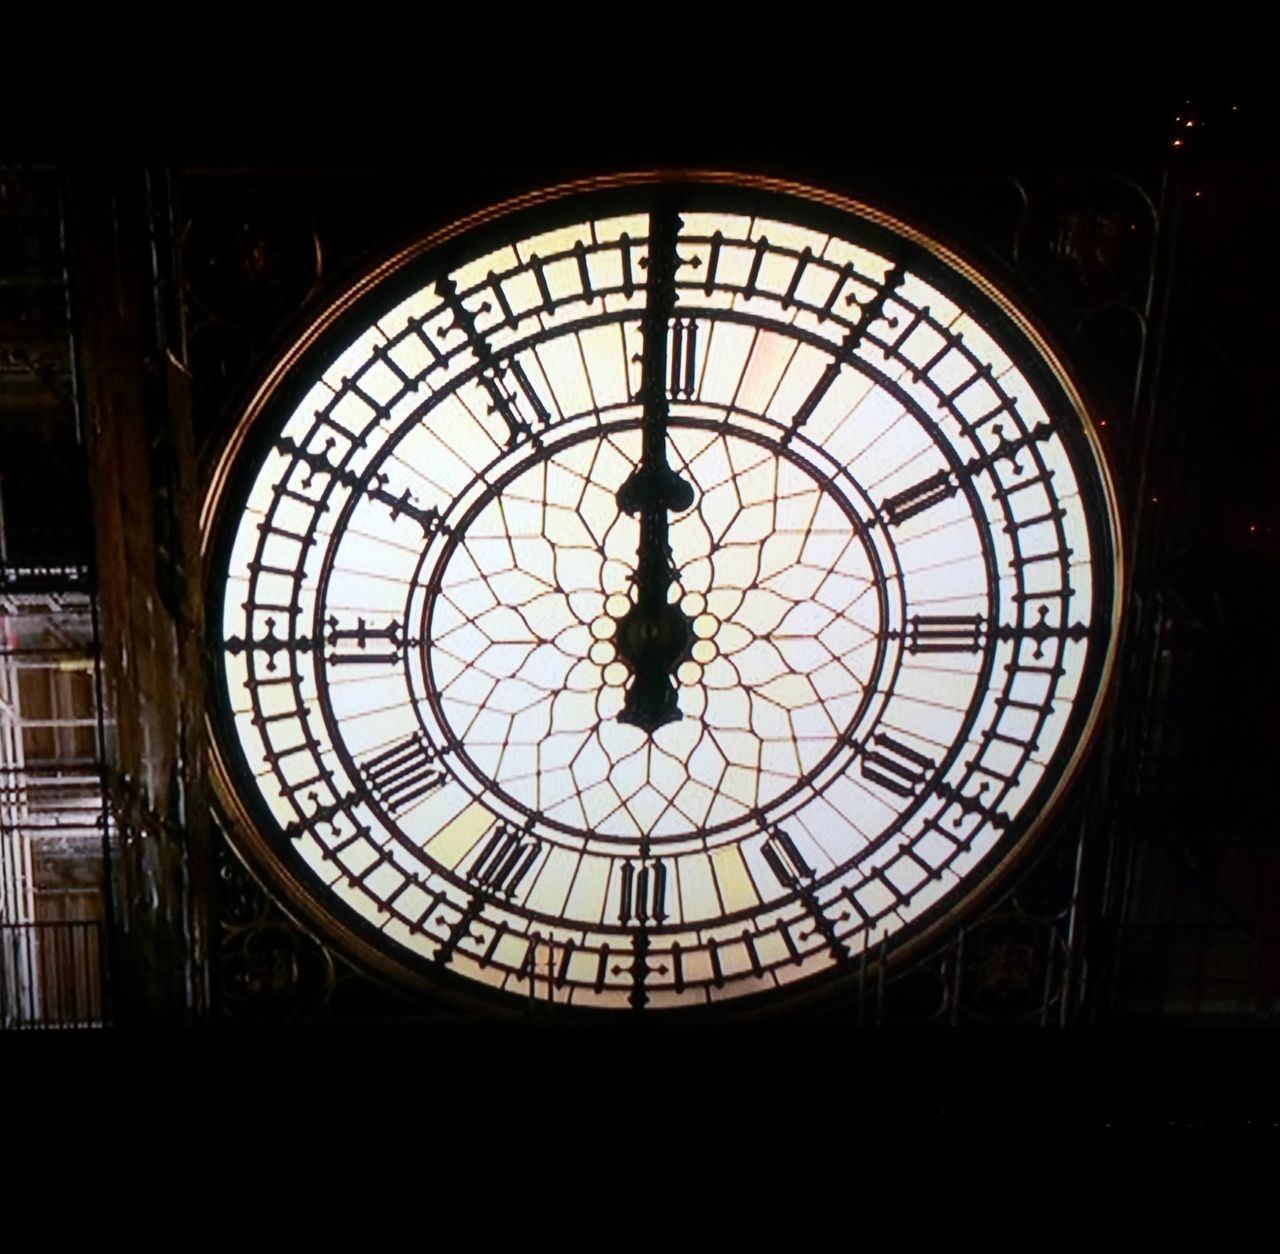 indoors, built structure, architecture, geometric shape, circle, no people, glass - material, shape, dome, pattern, time, clock, low angle view, transparent, ceiling, cupola, history, skylight, day, directly below, clock face